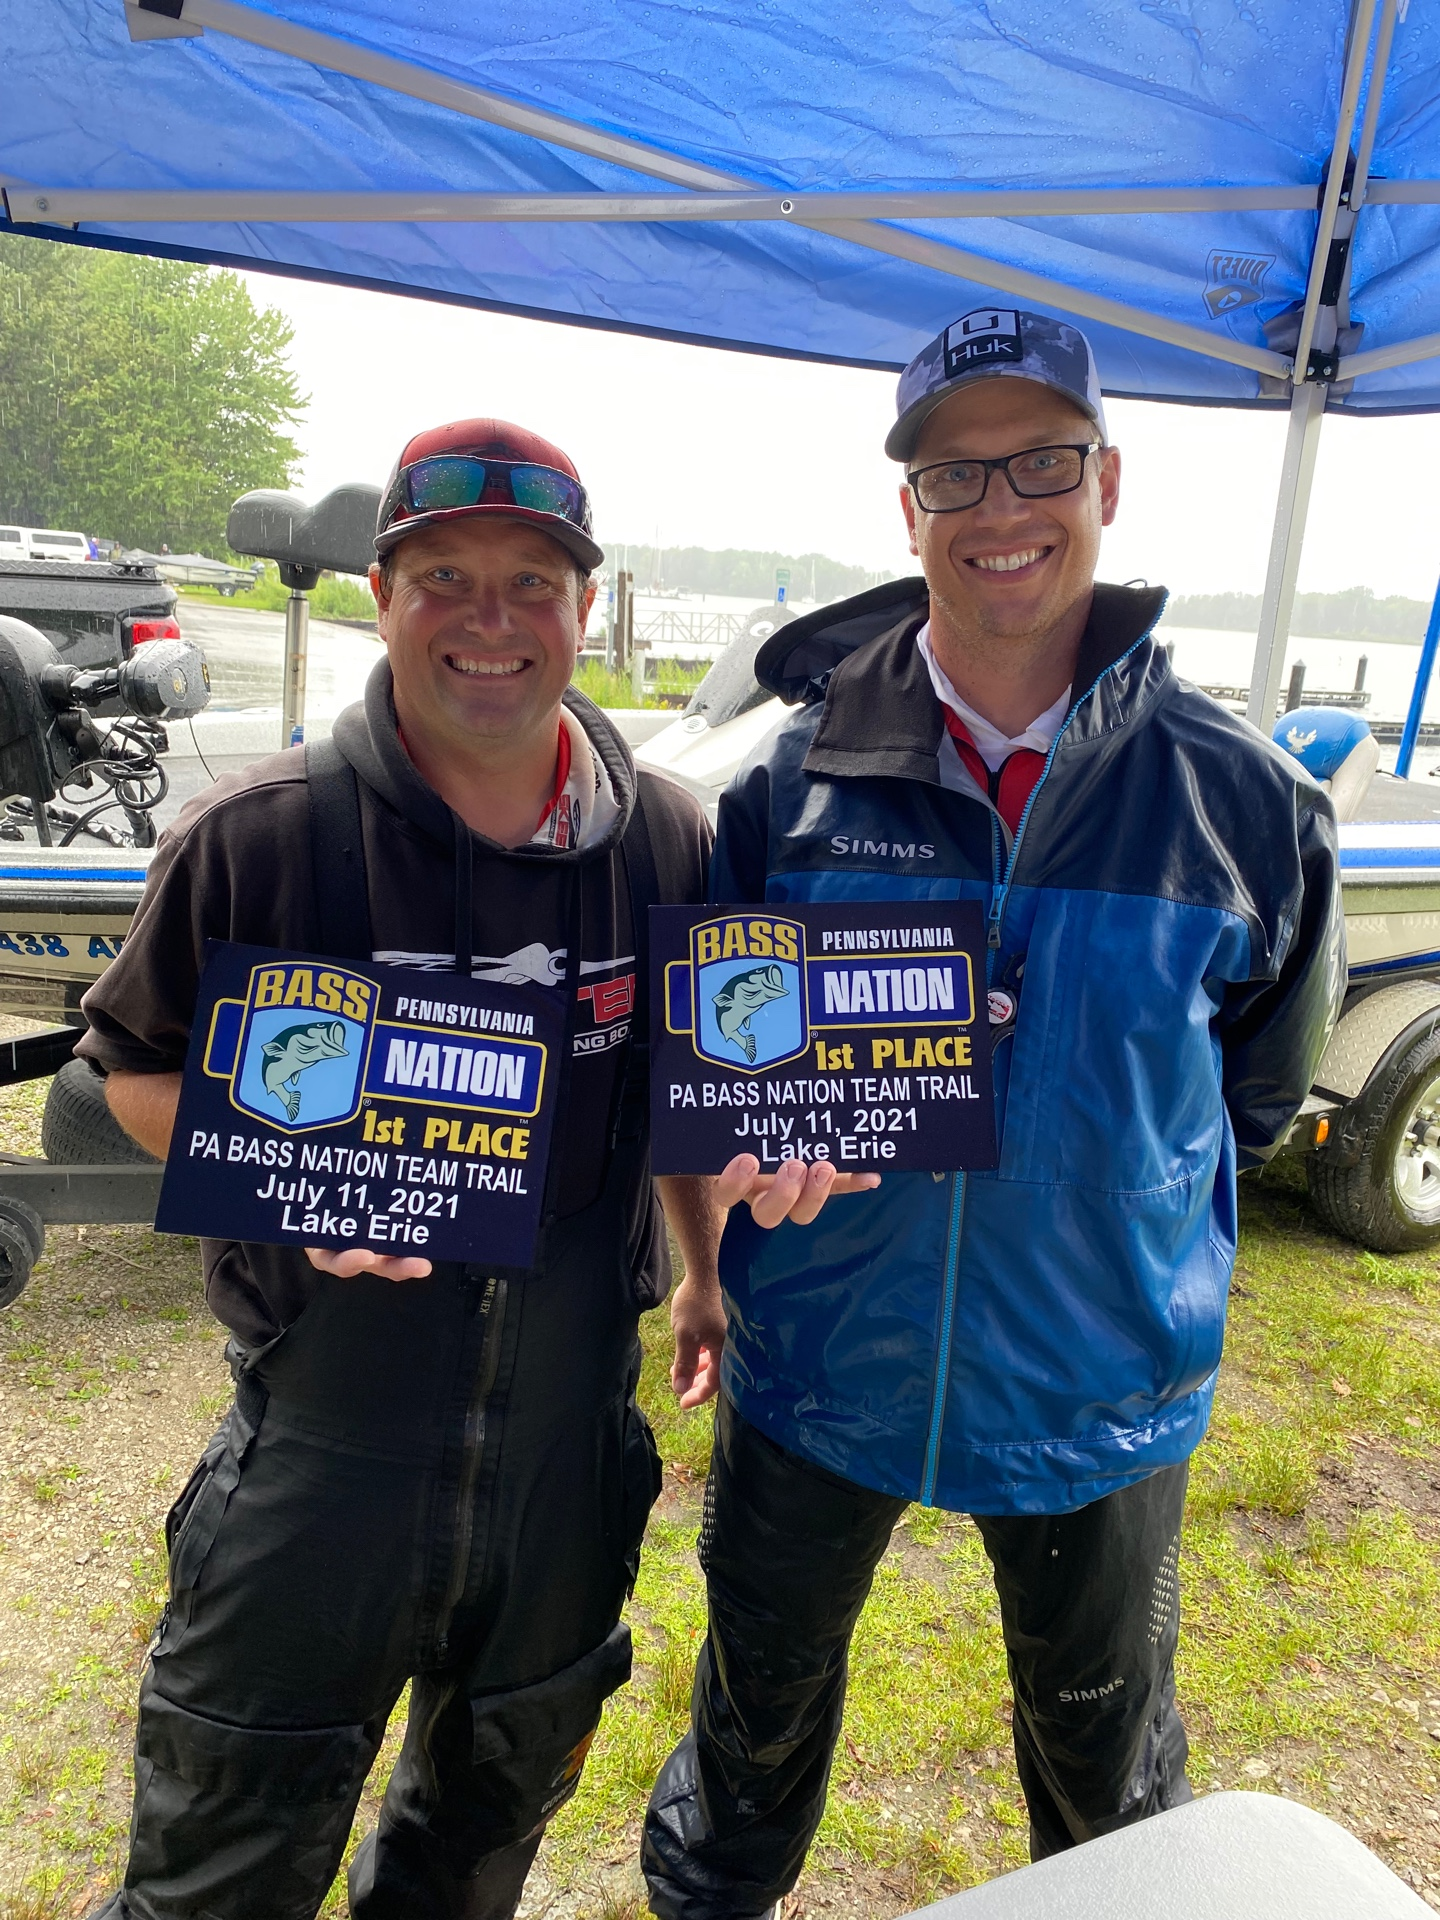 2021_LakeErieEvents_July10-11_01